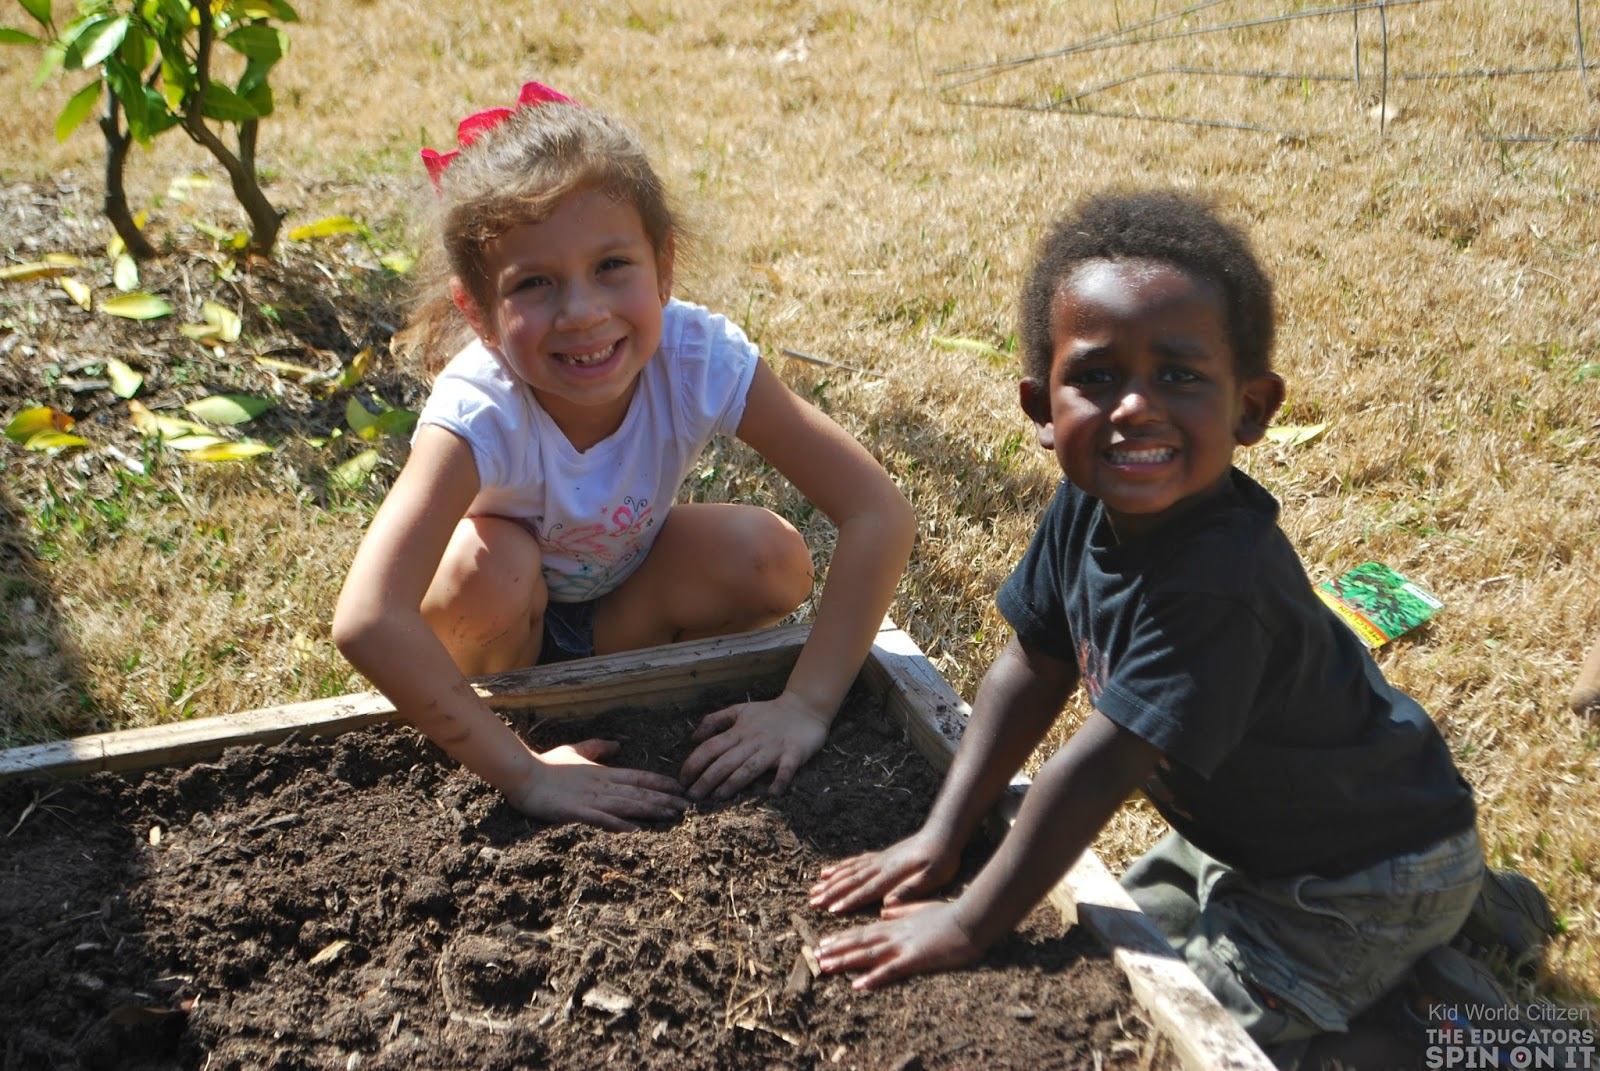 Two little gardners can't wait to plant vegetables in their backyard garden